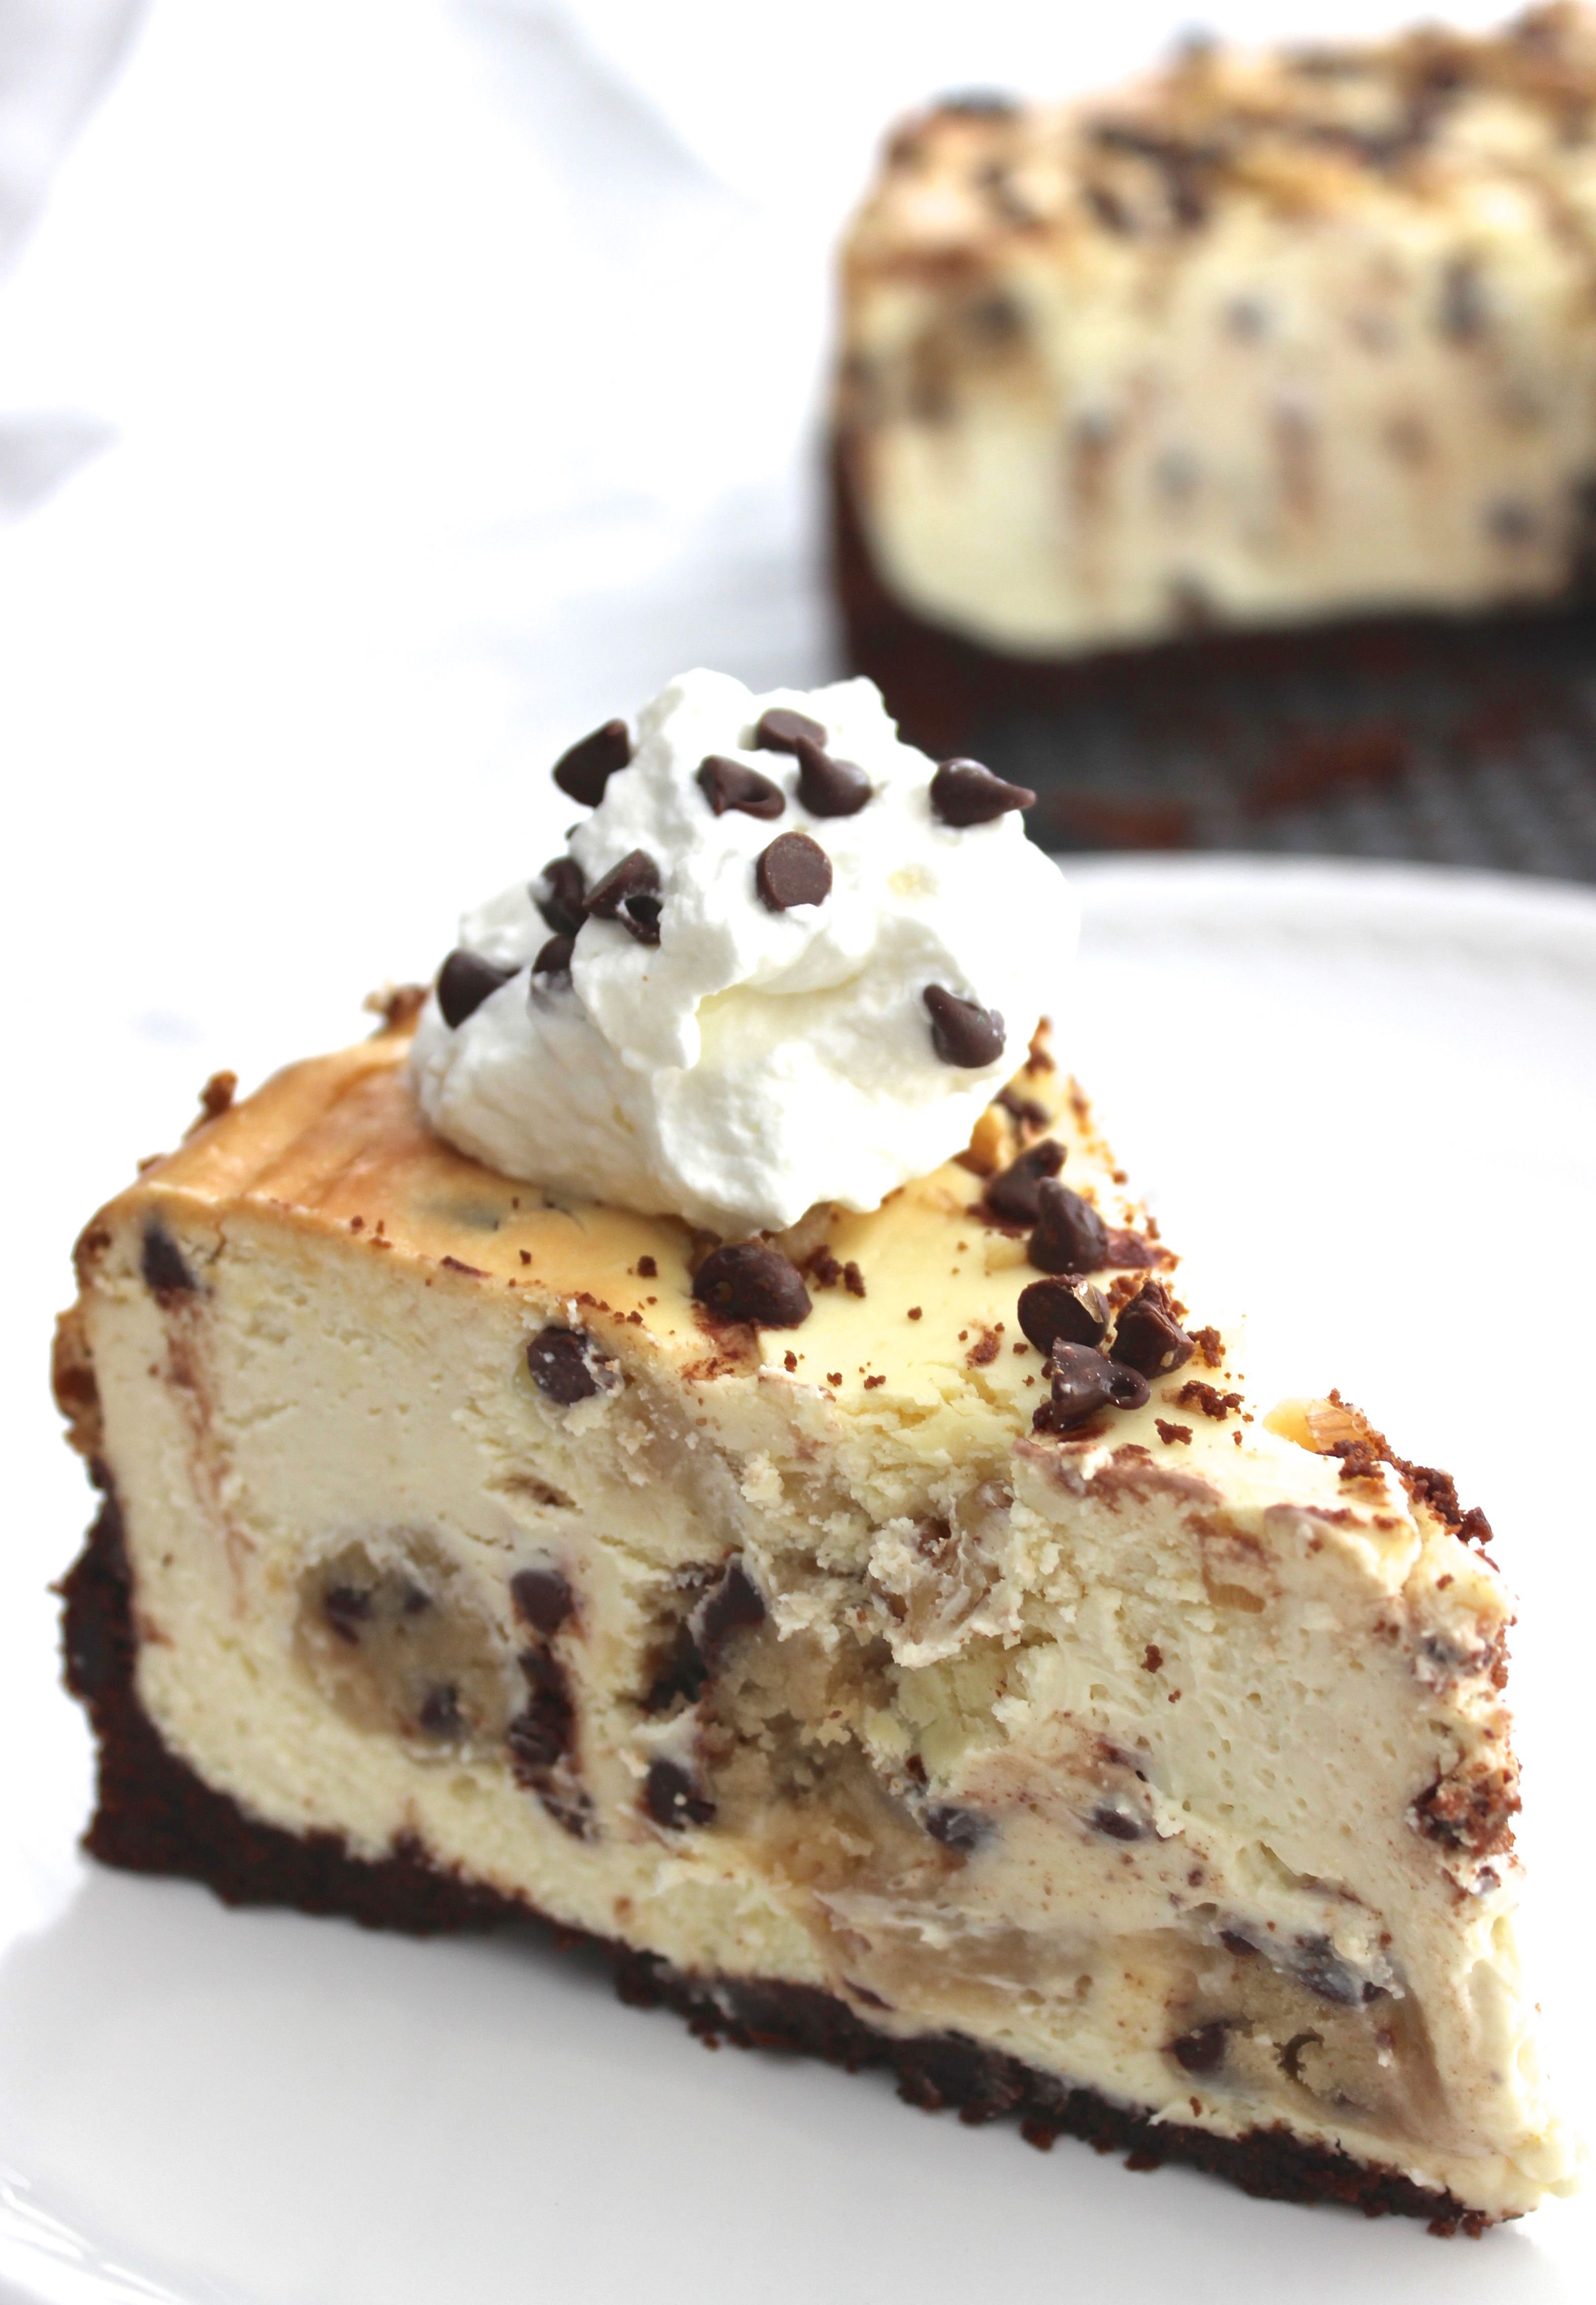 Cheesecake Factory Birthday Cake Chocolate Chip Cookie Dough Cheesecake Could It Be Any More